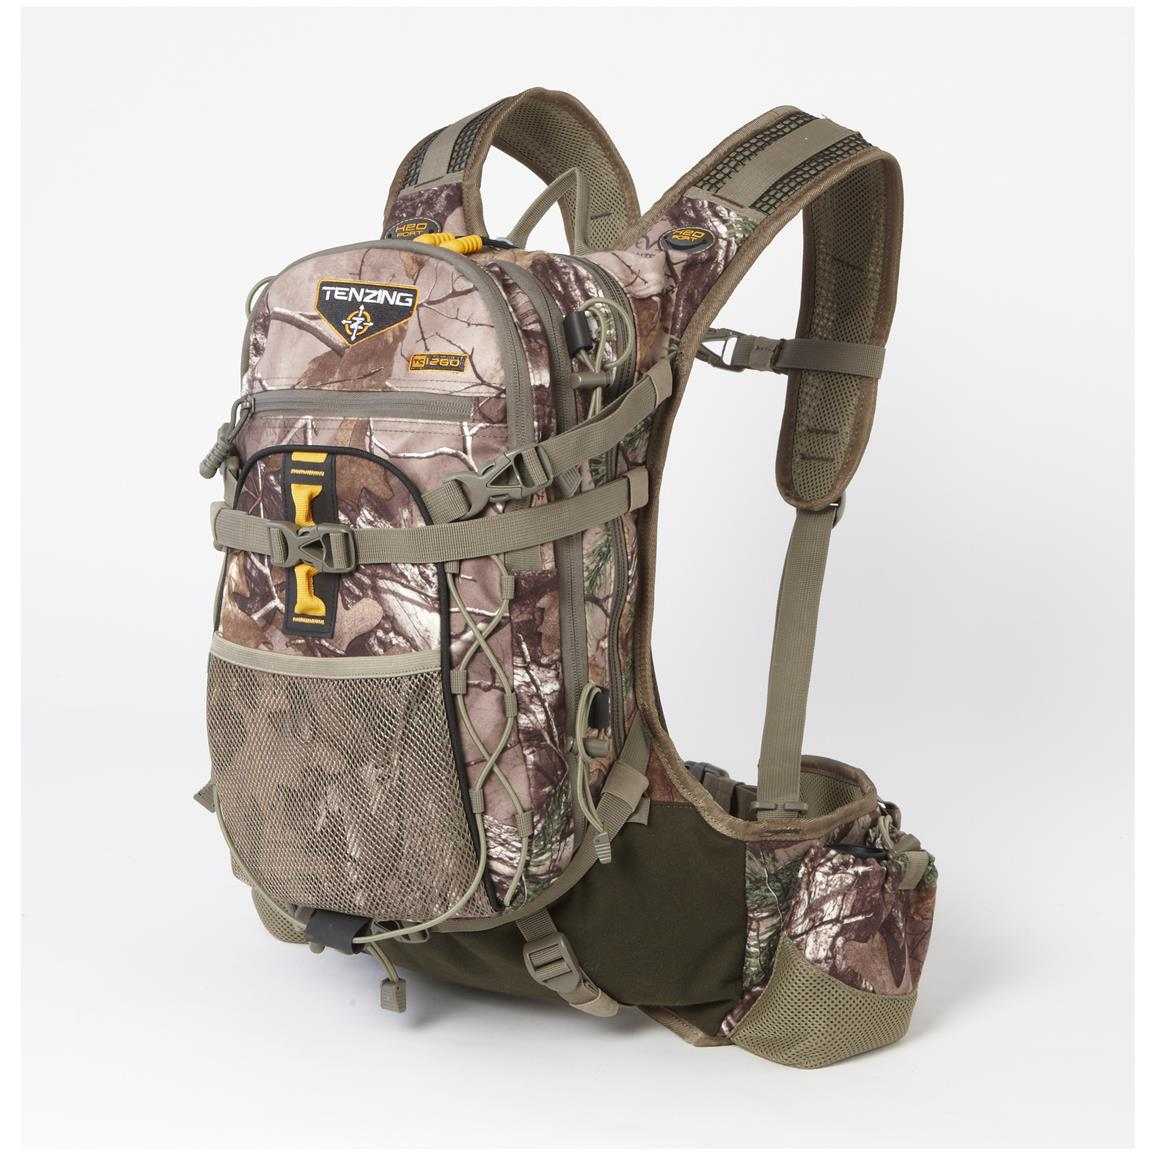 Tenzing The Choice TC 1260 Backpack